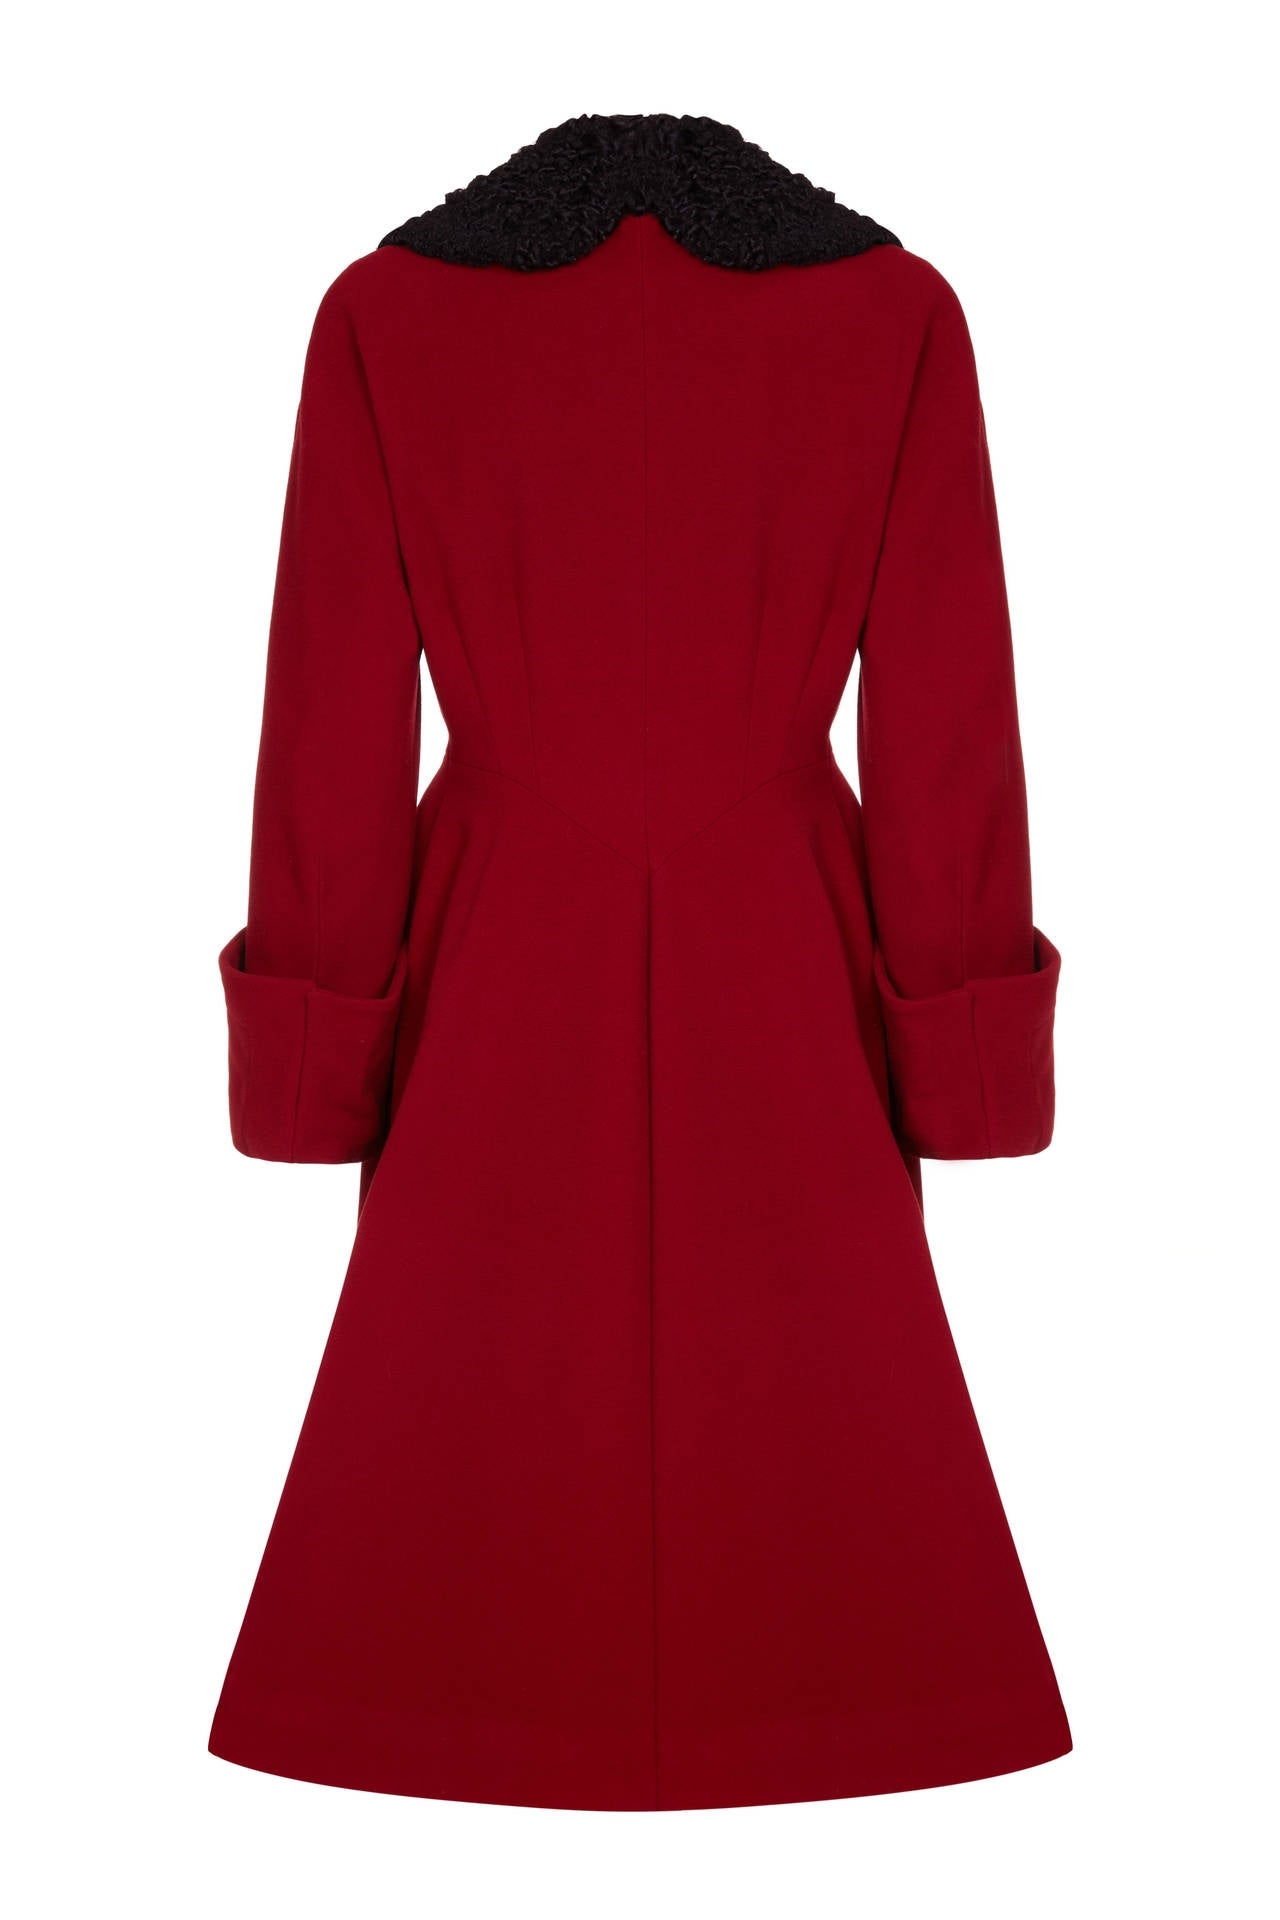 1940s Red Wool Coat 2